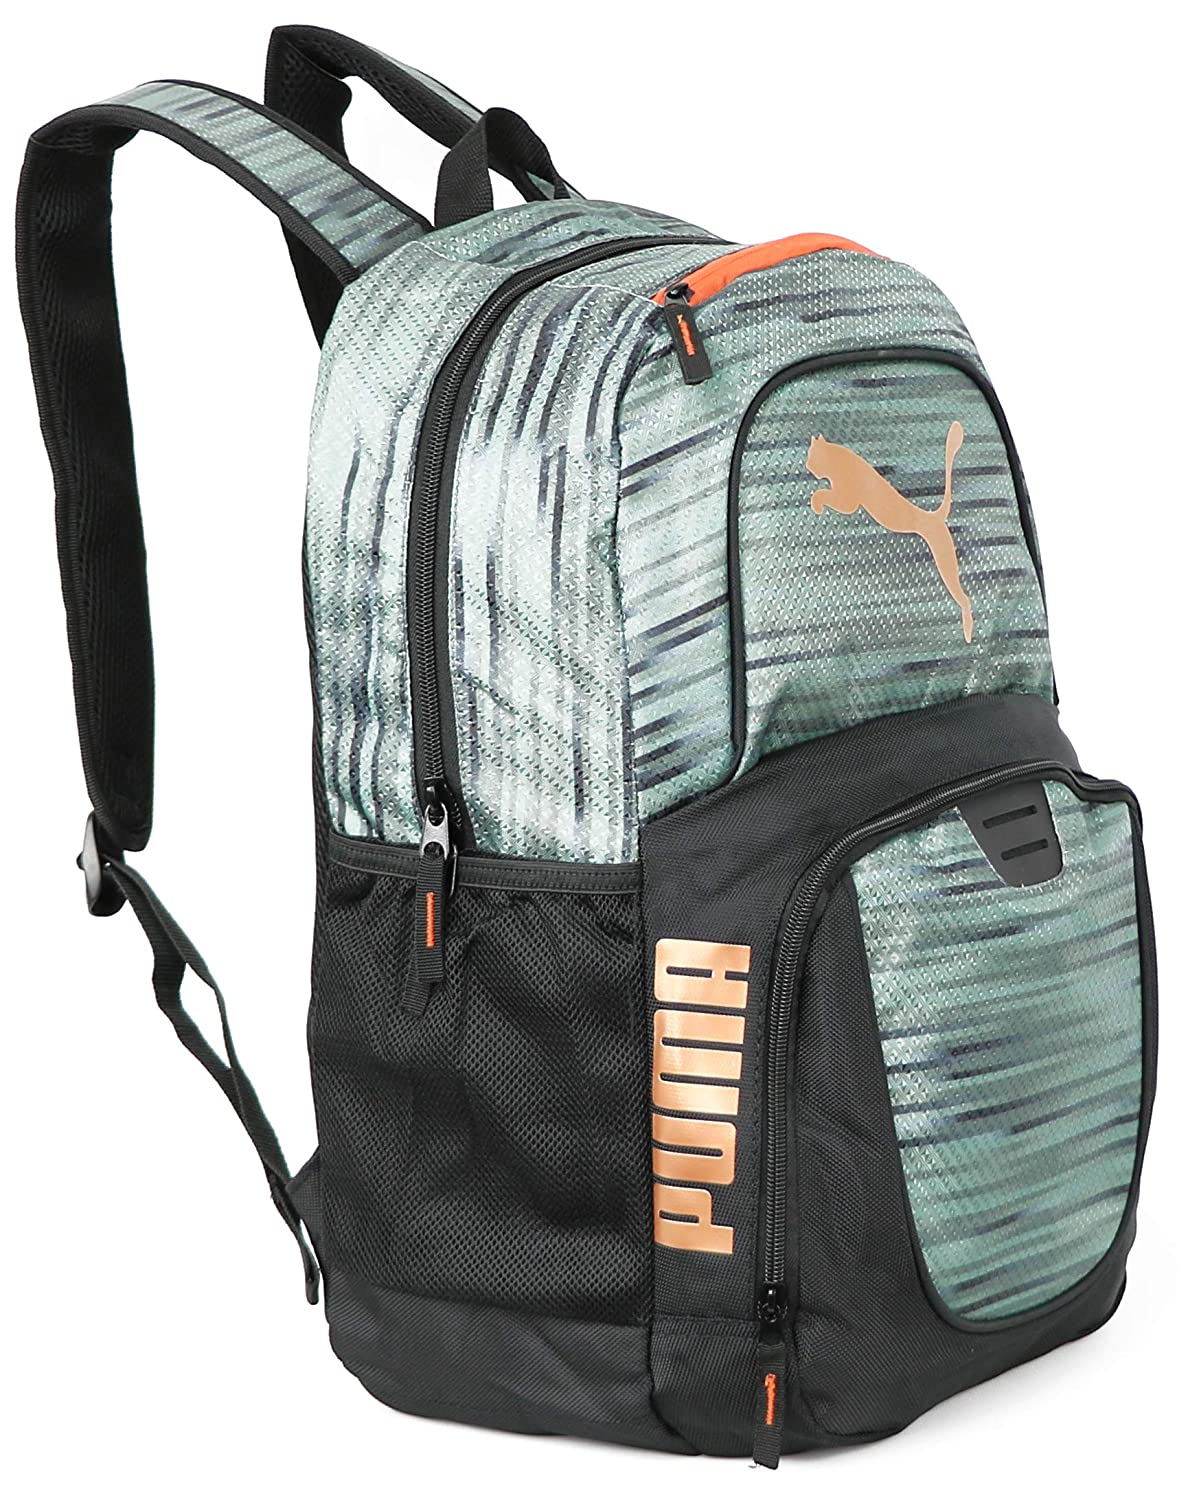 83ea446ff6 Amazon.com  PUMA Men s Evercat Contender 3.0 Backpack  Clothing